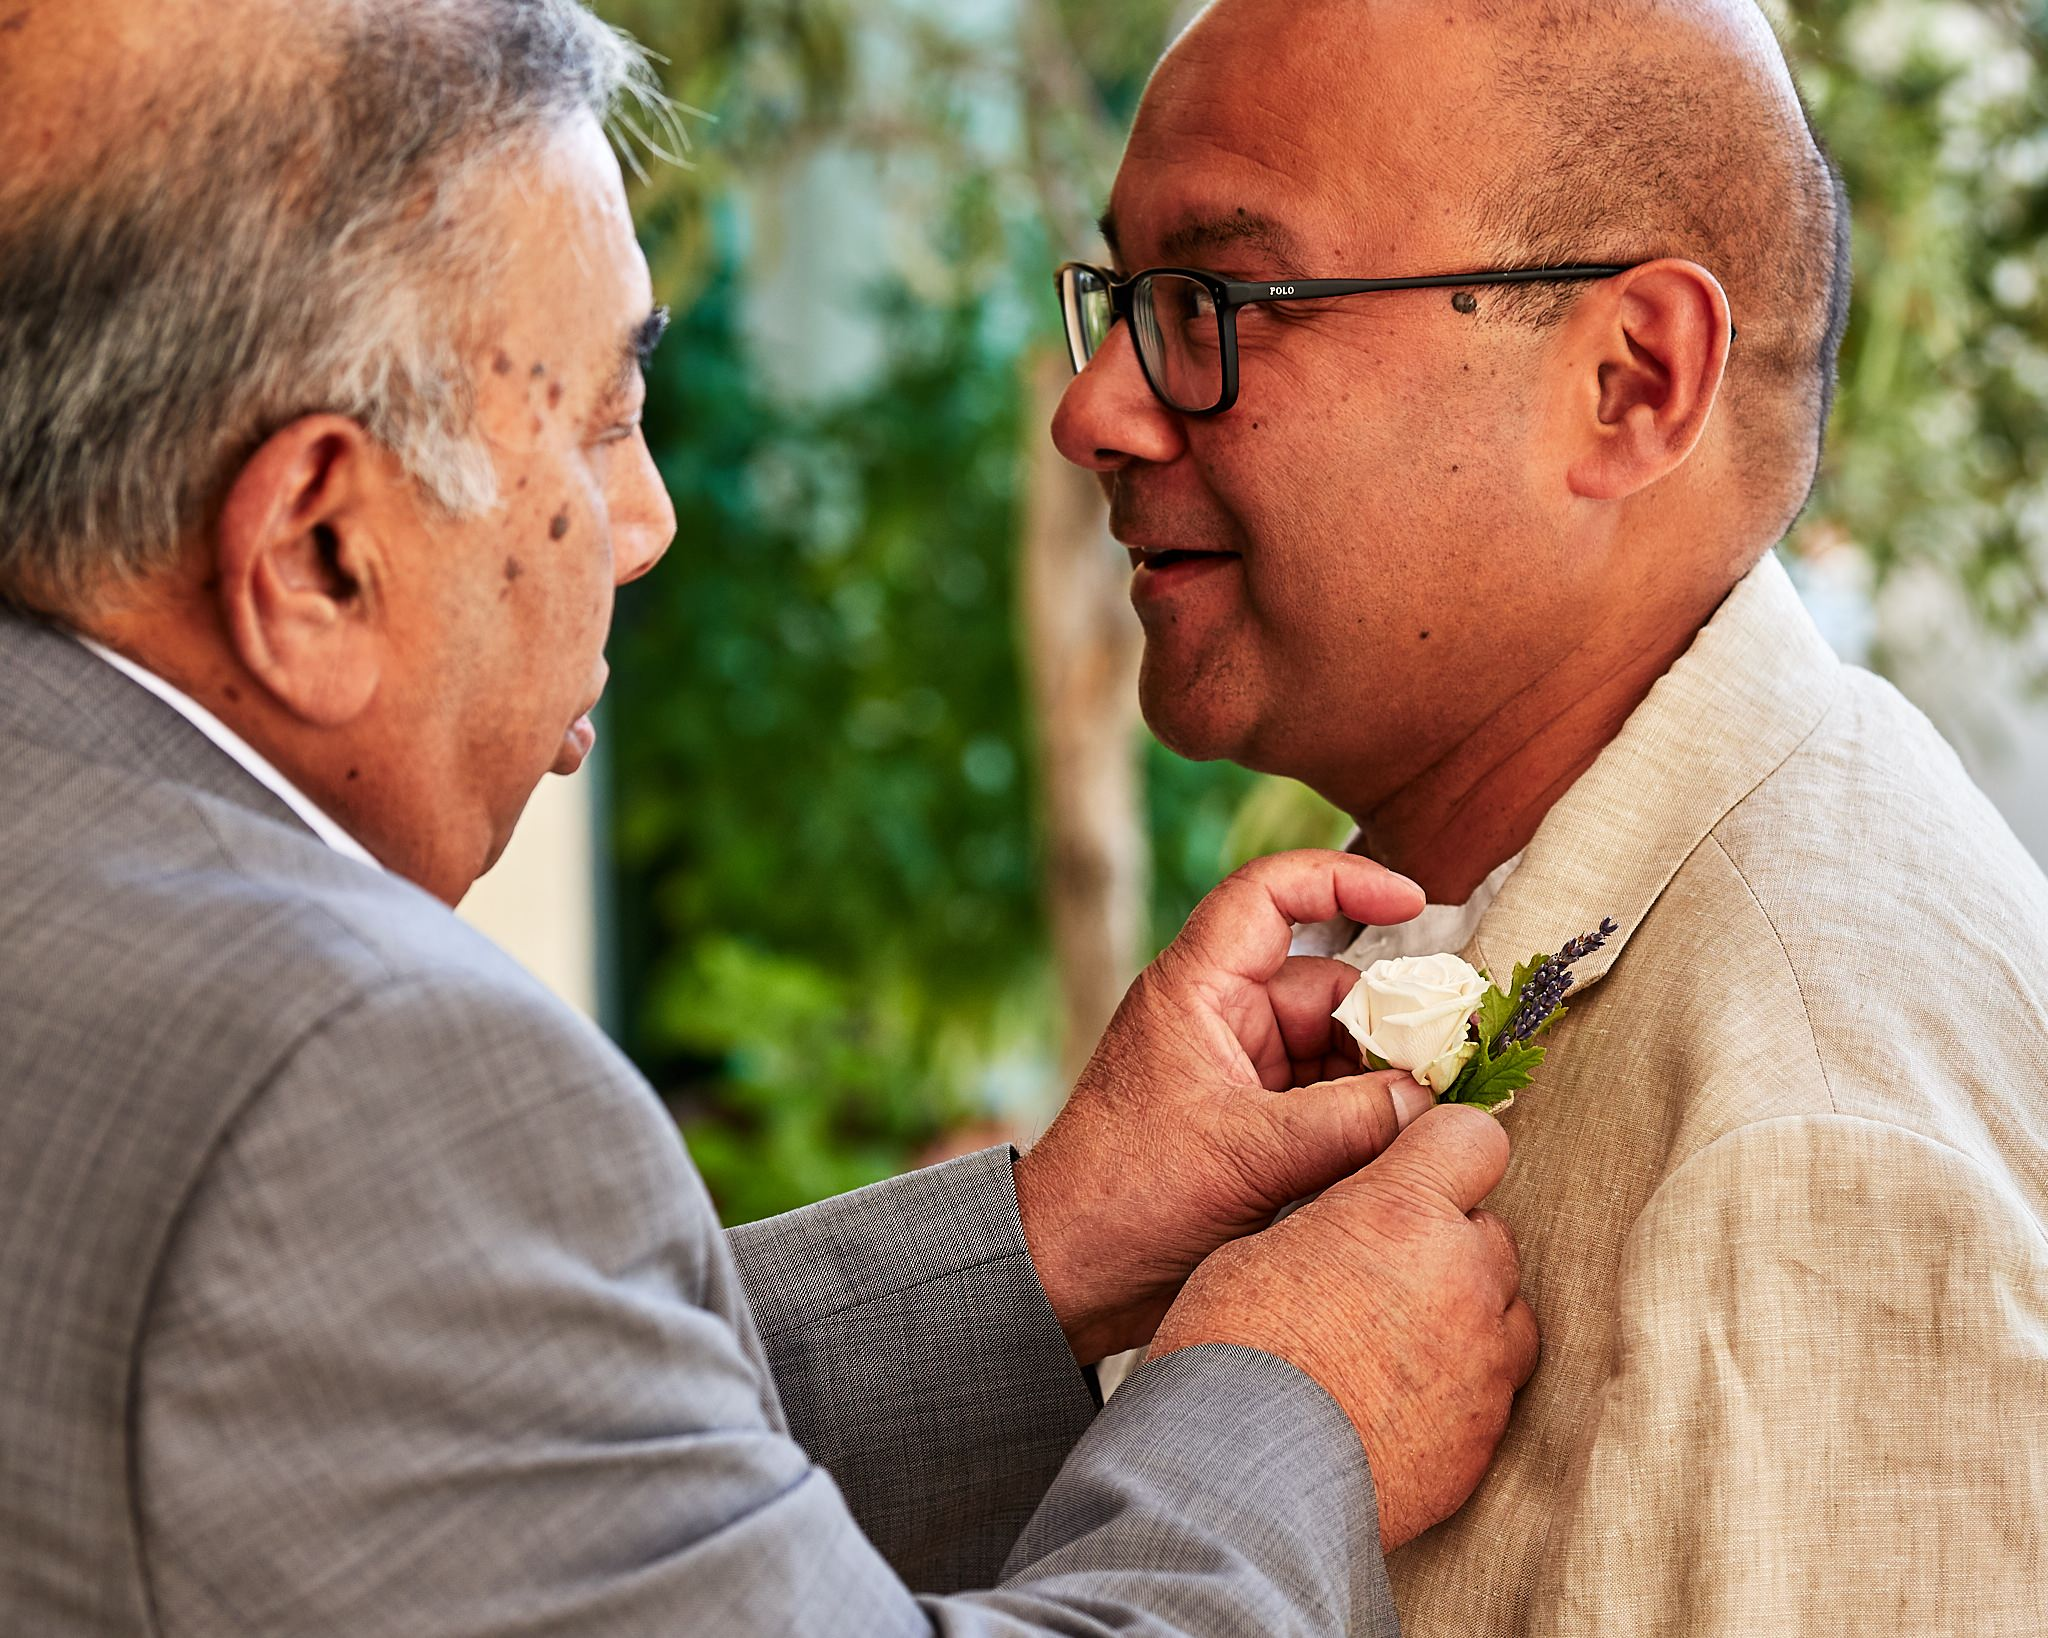 The Wedding of Carolyn and Avirup, which was held at Natura Beach Hotel, Polis in Cyprus.